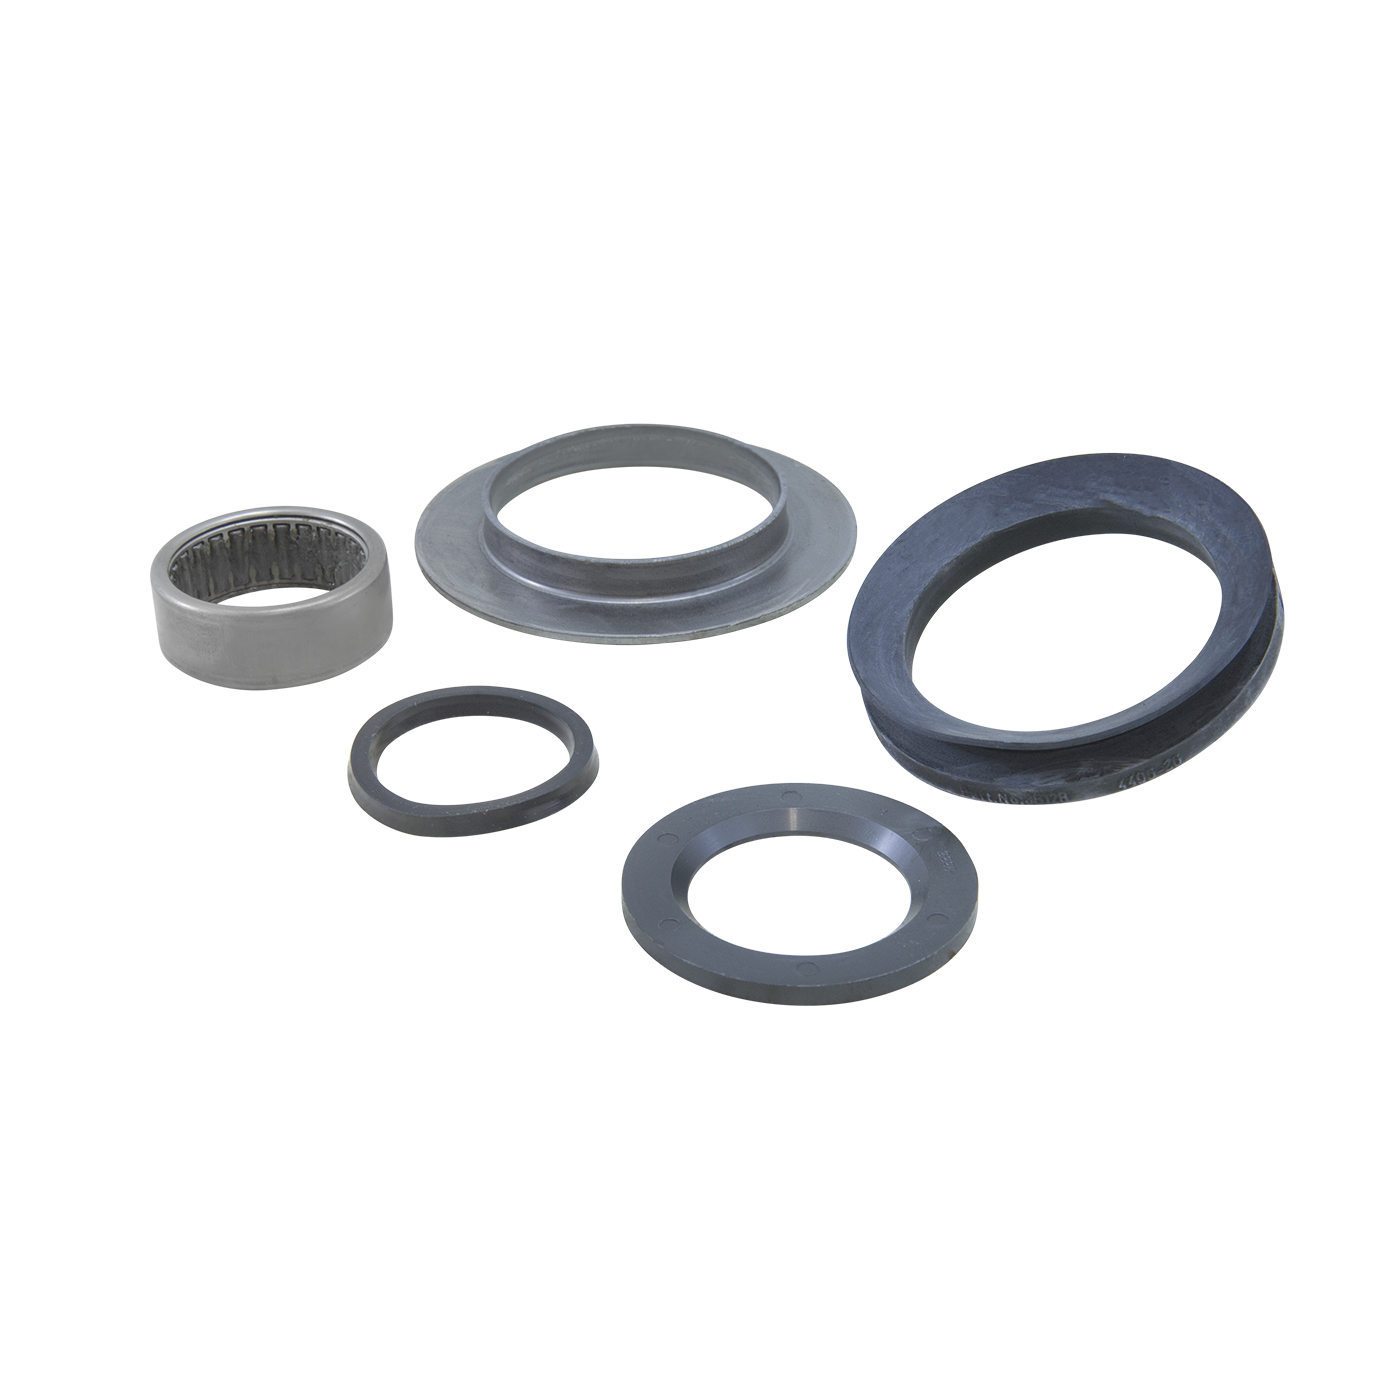 YSPSP-027 - Spindle bearing & seal kit for Dana 44 IFS